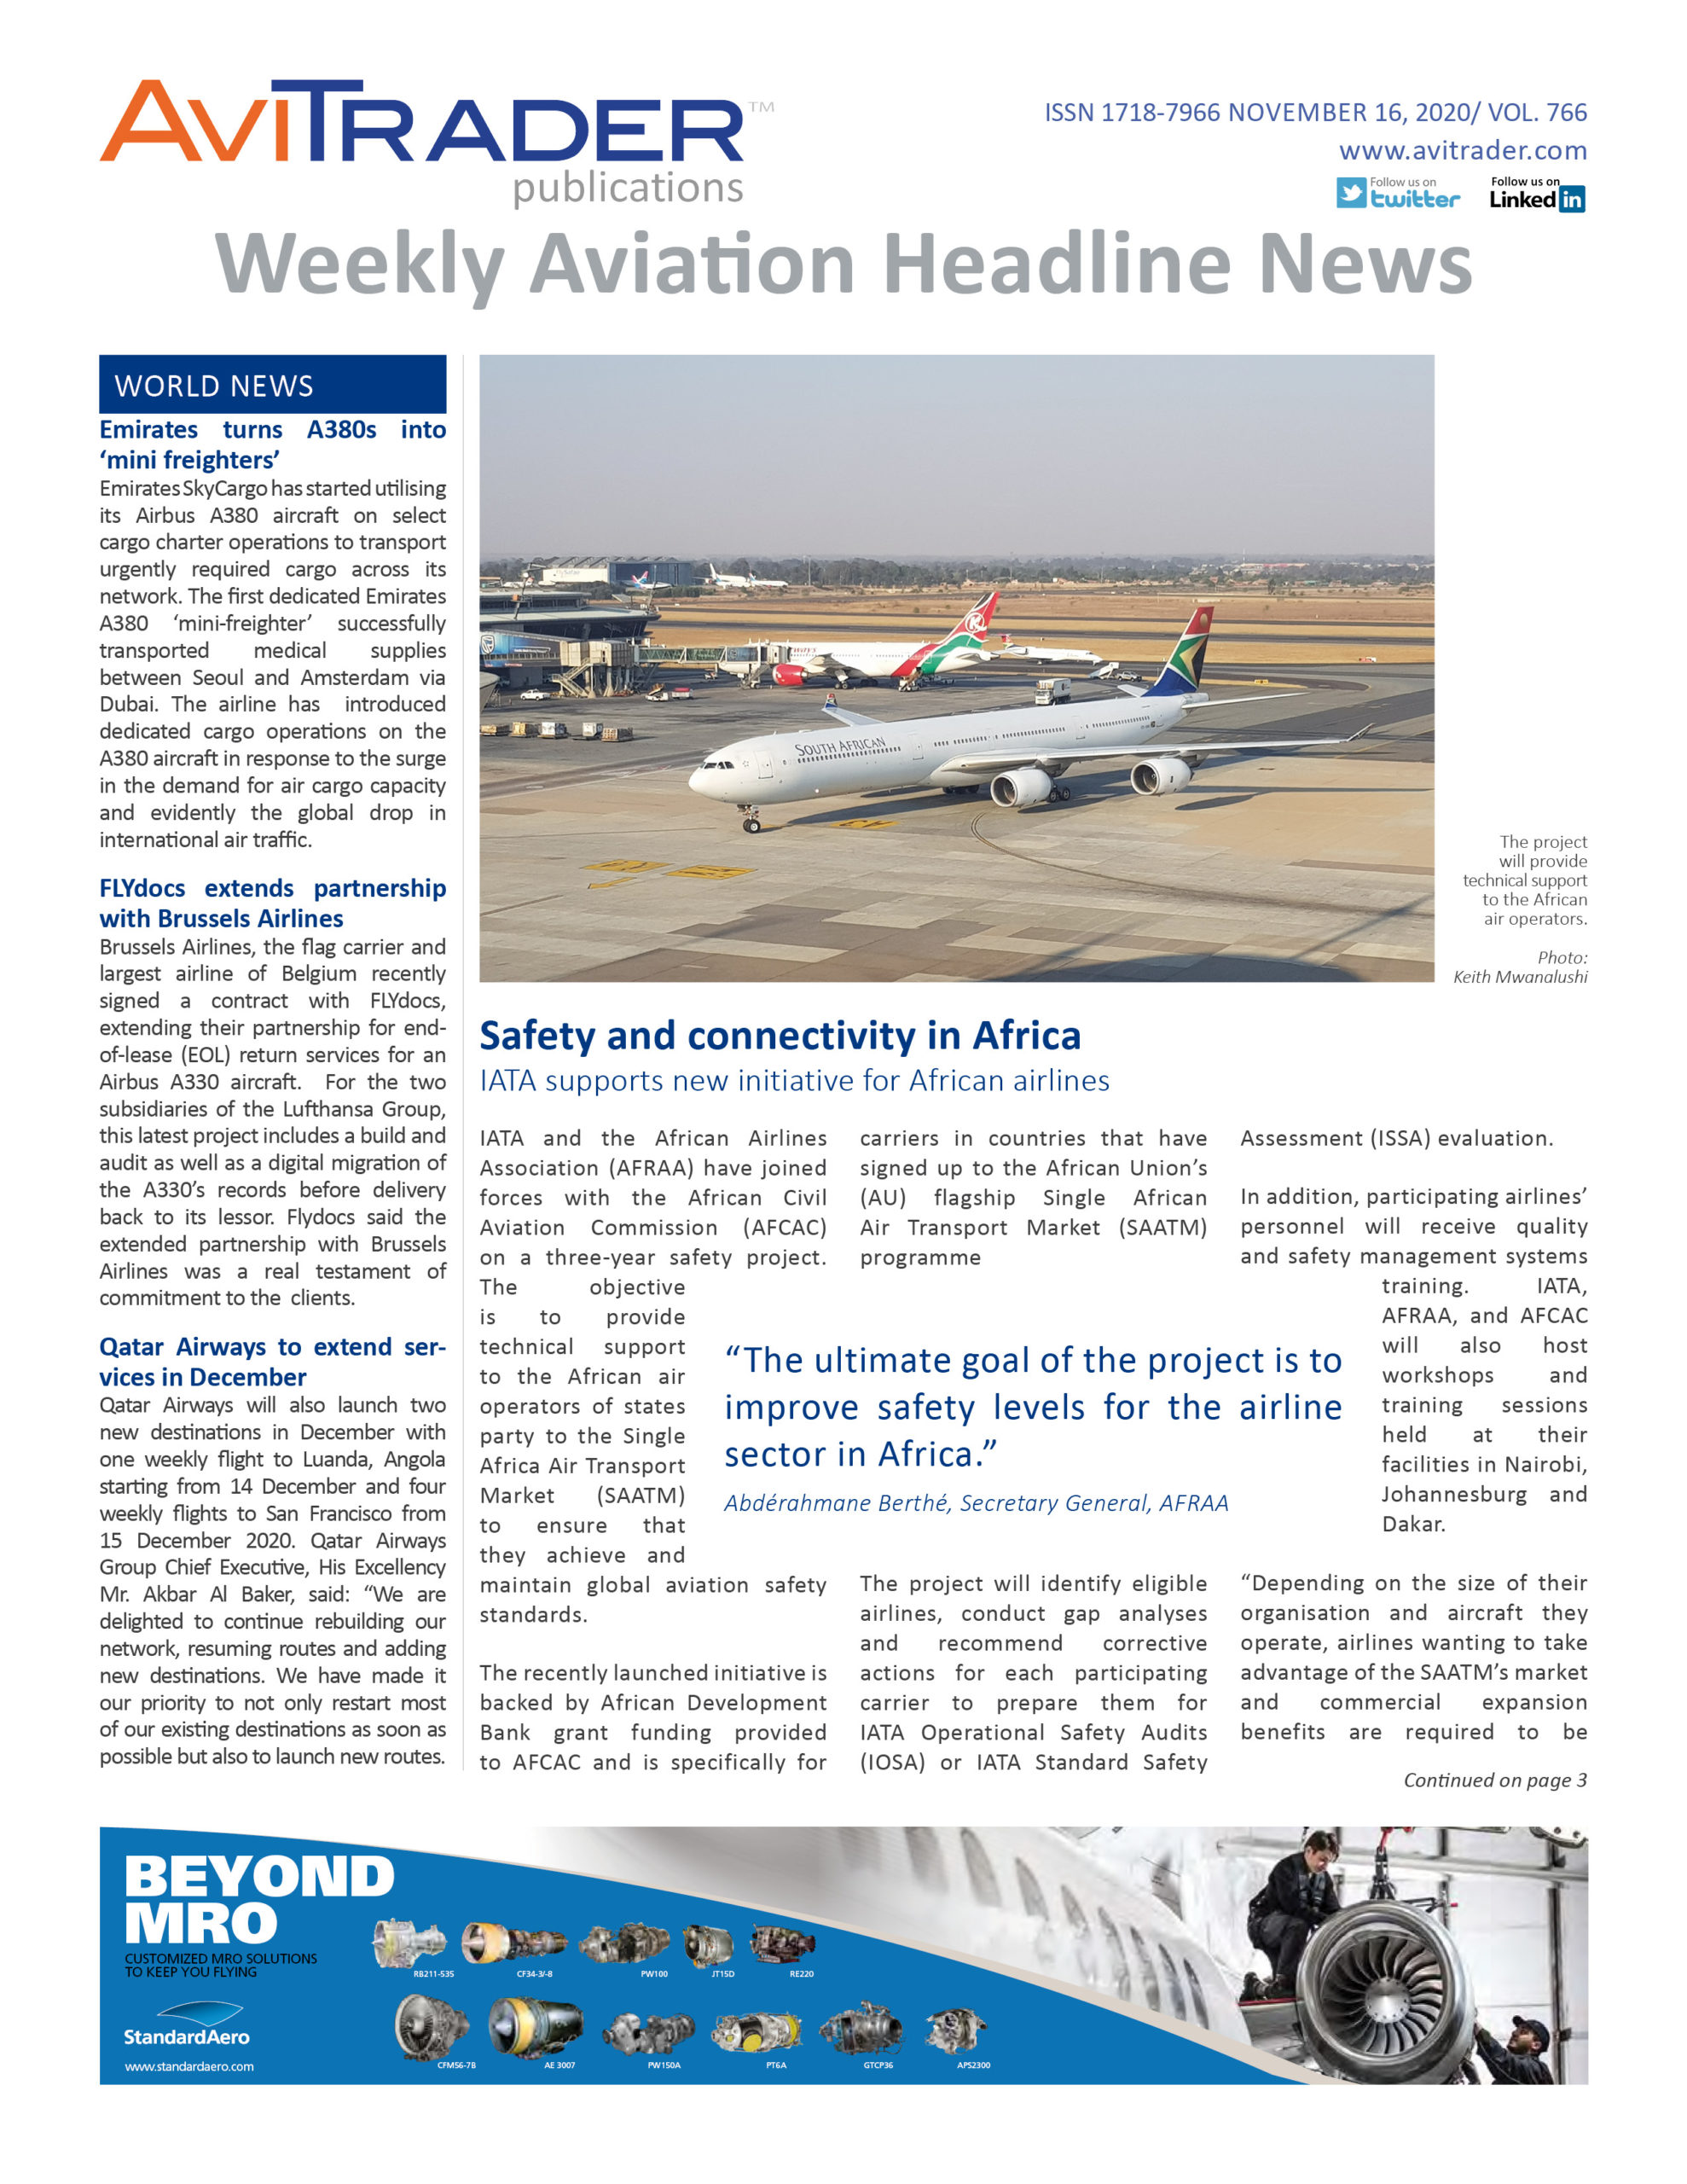 AviTrader_Weekly_Headline_News_Cover_2020-11-16